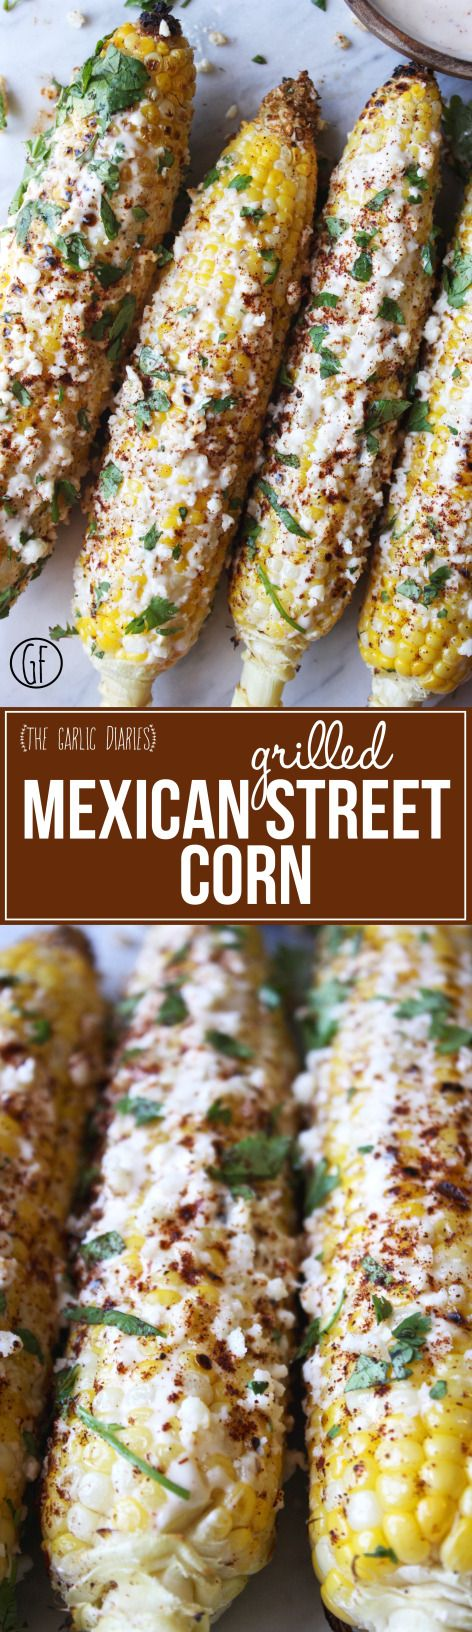 Attractive Mexican Food Ideas For Dinner Party Part - 10: TheGarlicDiaries.com | Food Blogging Community | Pinterest | Mexican Street  Corn, Street Corn And Meu2026